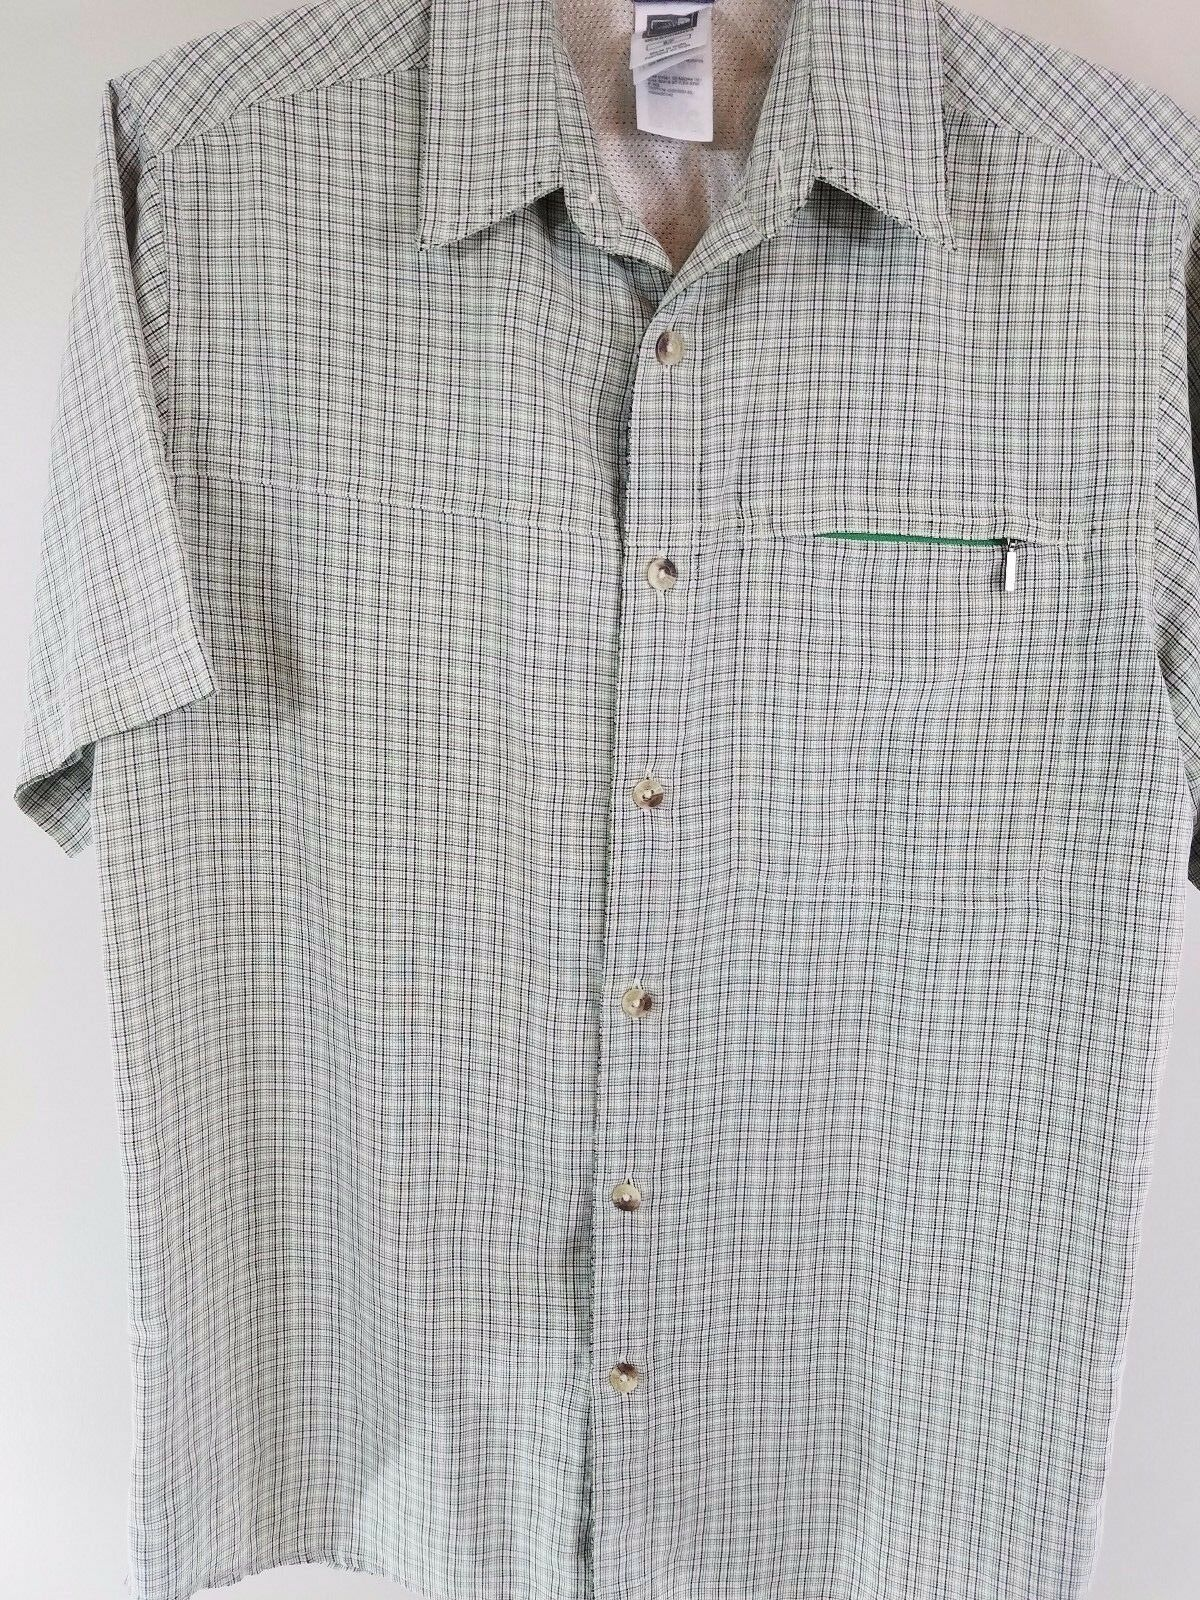 The North Face button front shirt Mens Small green plaid -A8